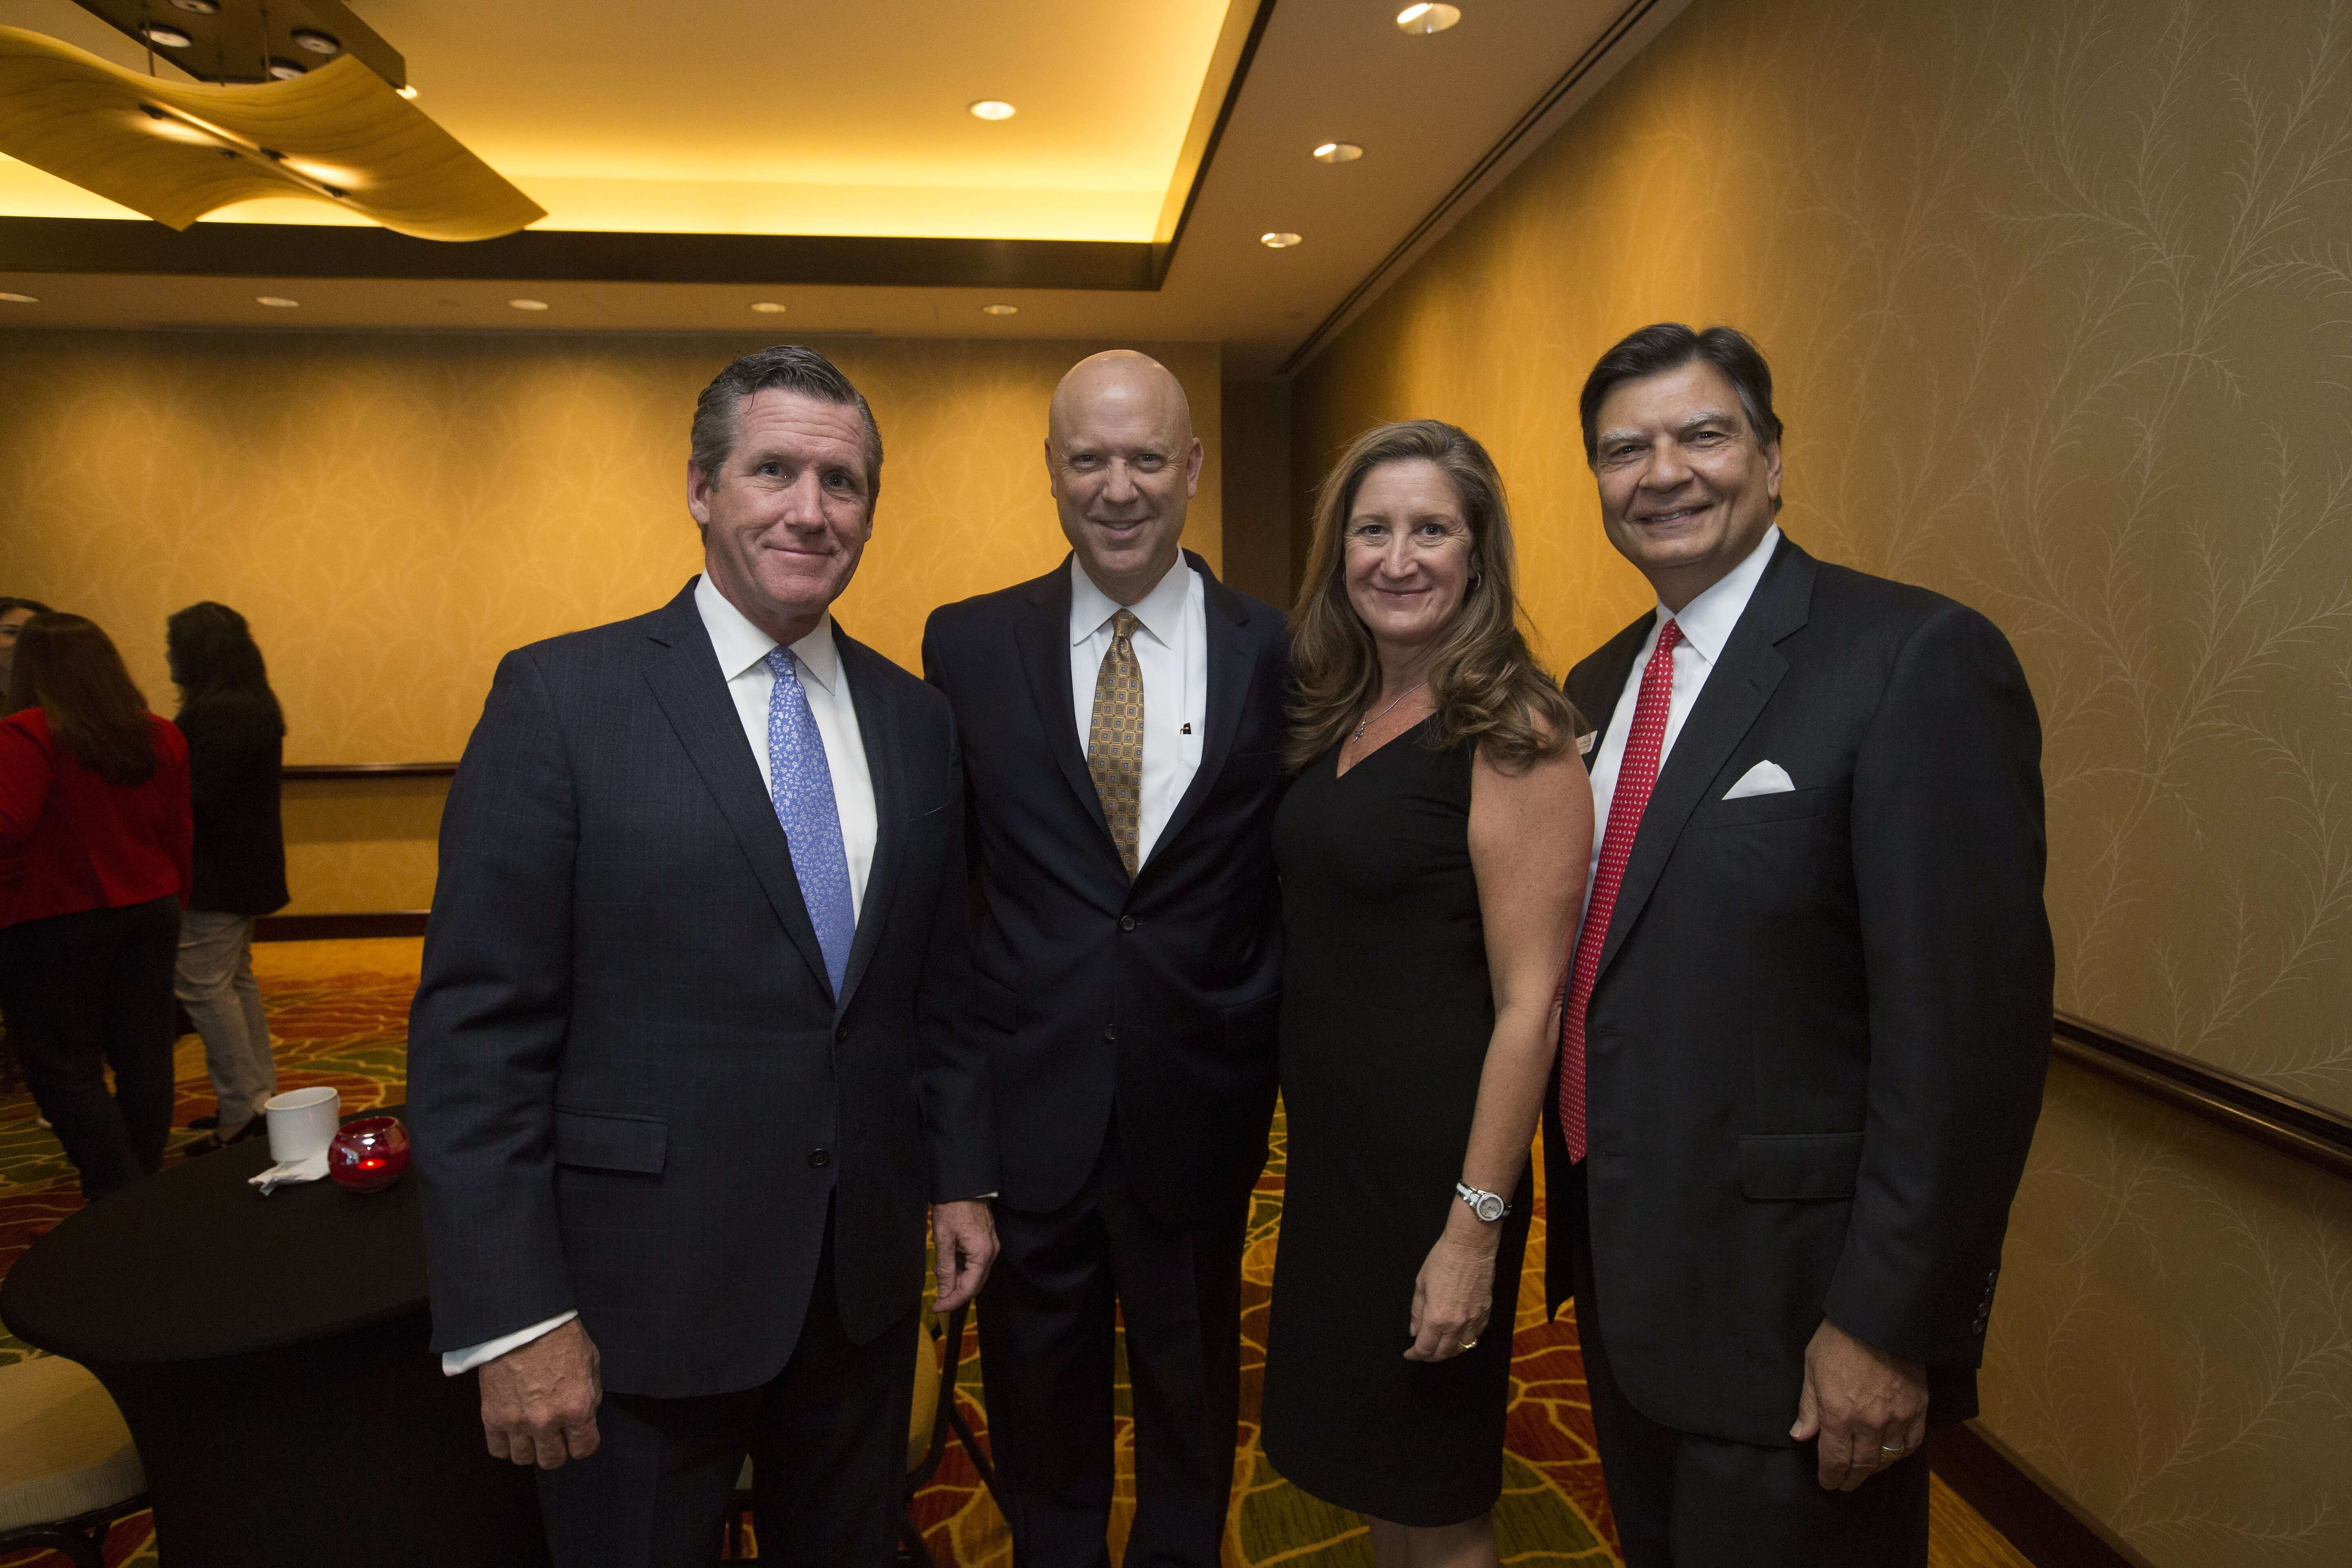 Texas Medical Center President and CEO, William F. McKeon, Houston Business Journal President and Publisher, Bob Charlet, San José Clinic President and CEO, Paule Anne Lewis and San José Clinic Advisory Board Chair, Phil Morabito.